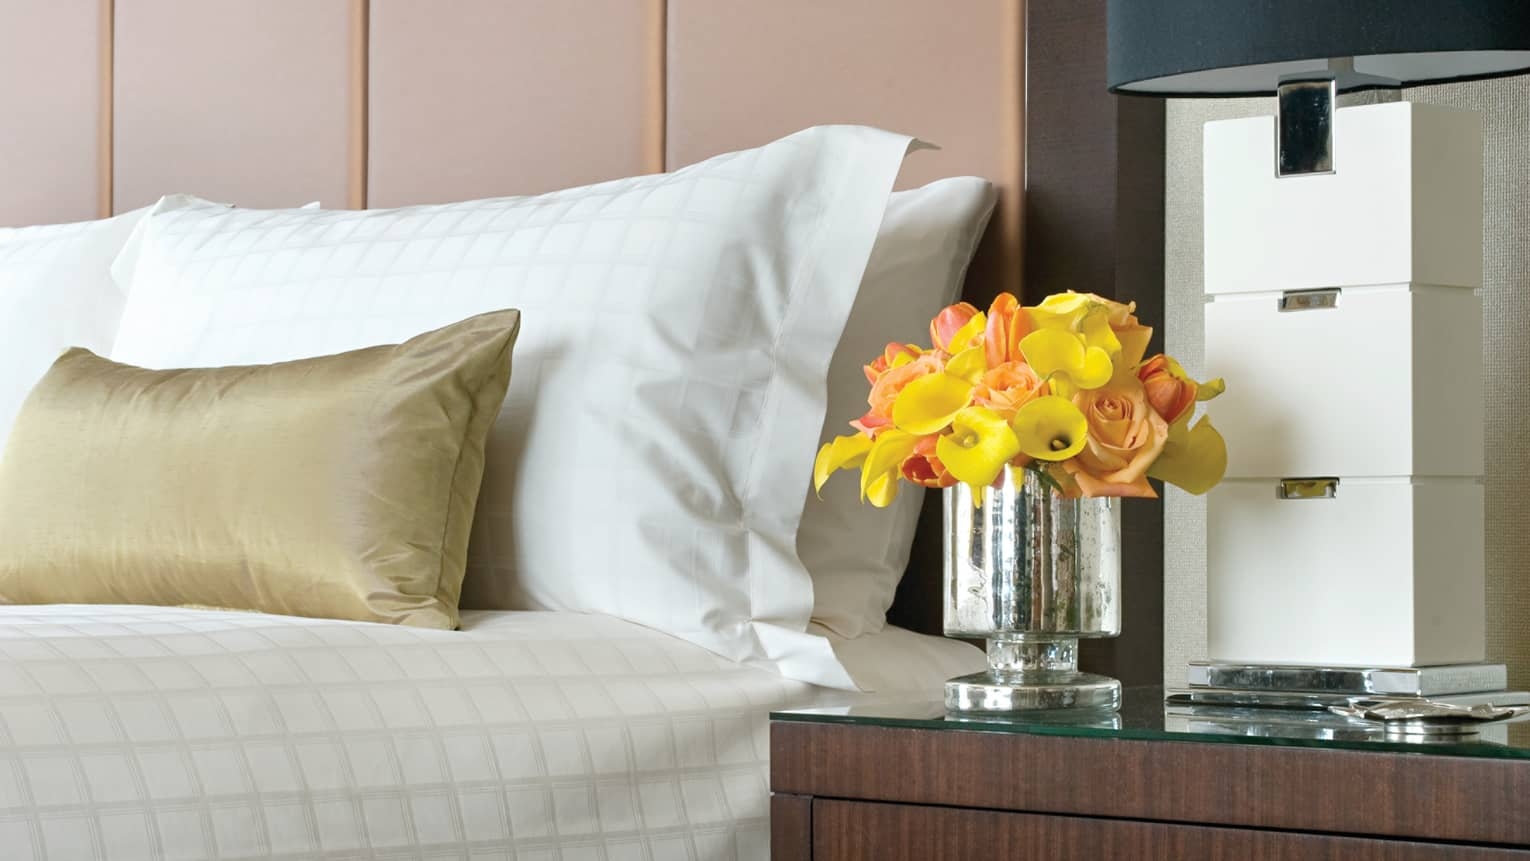 Premier Studio yellow, pink flowers in vase on nightstand by bed, gold pillow